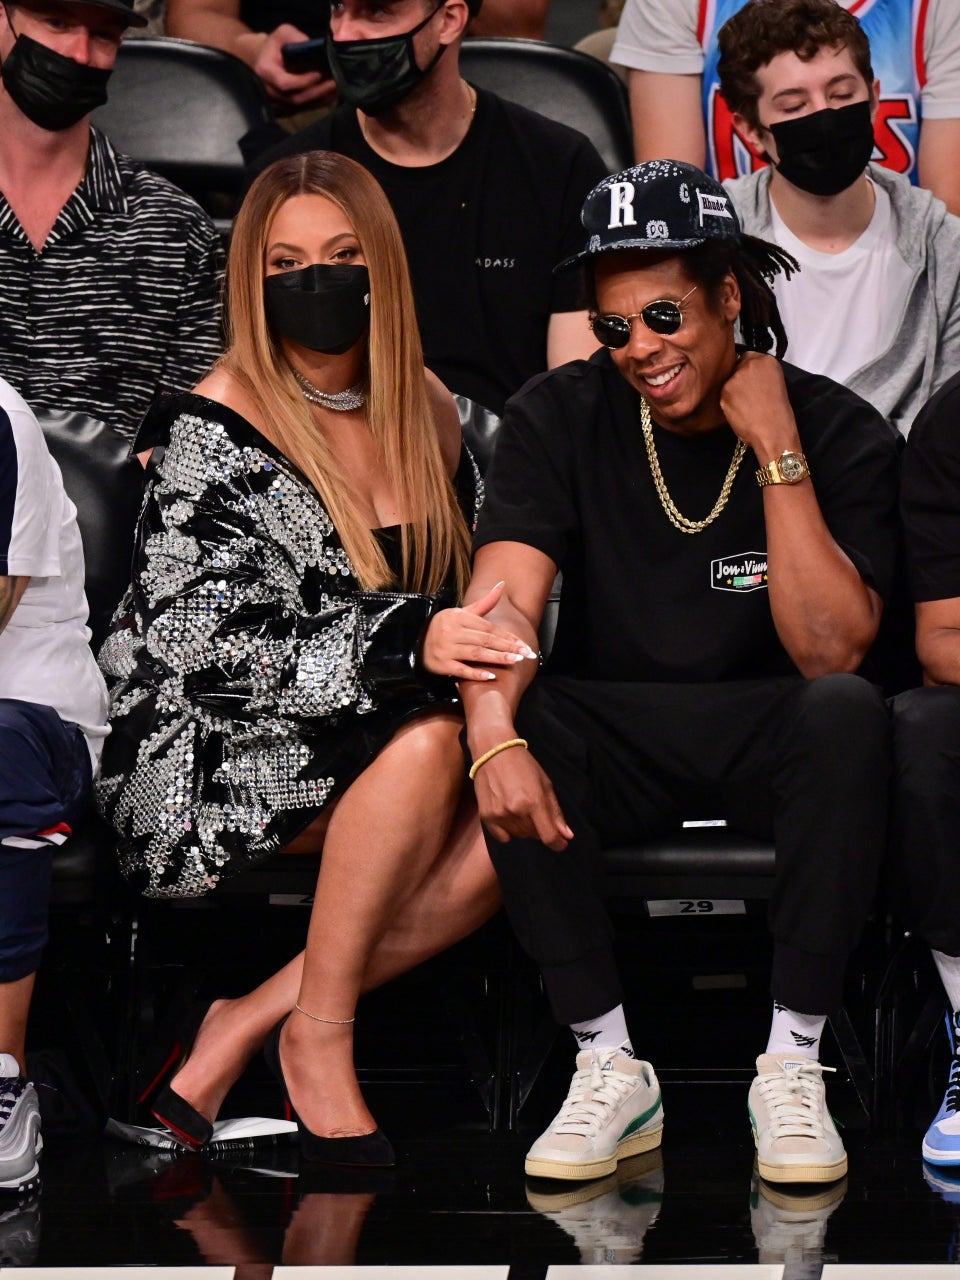 Love and Basketball: Beyoncé and Jay-Z's Sweetest NBA Courtside Moments